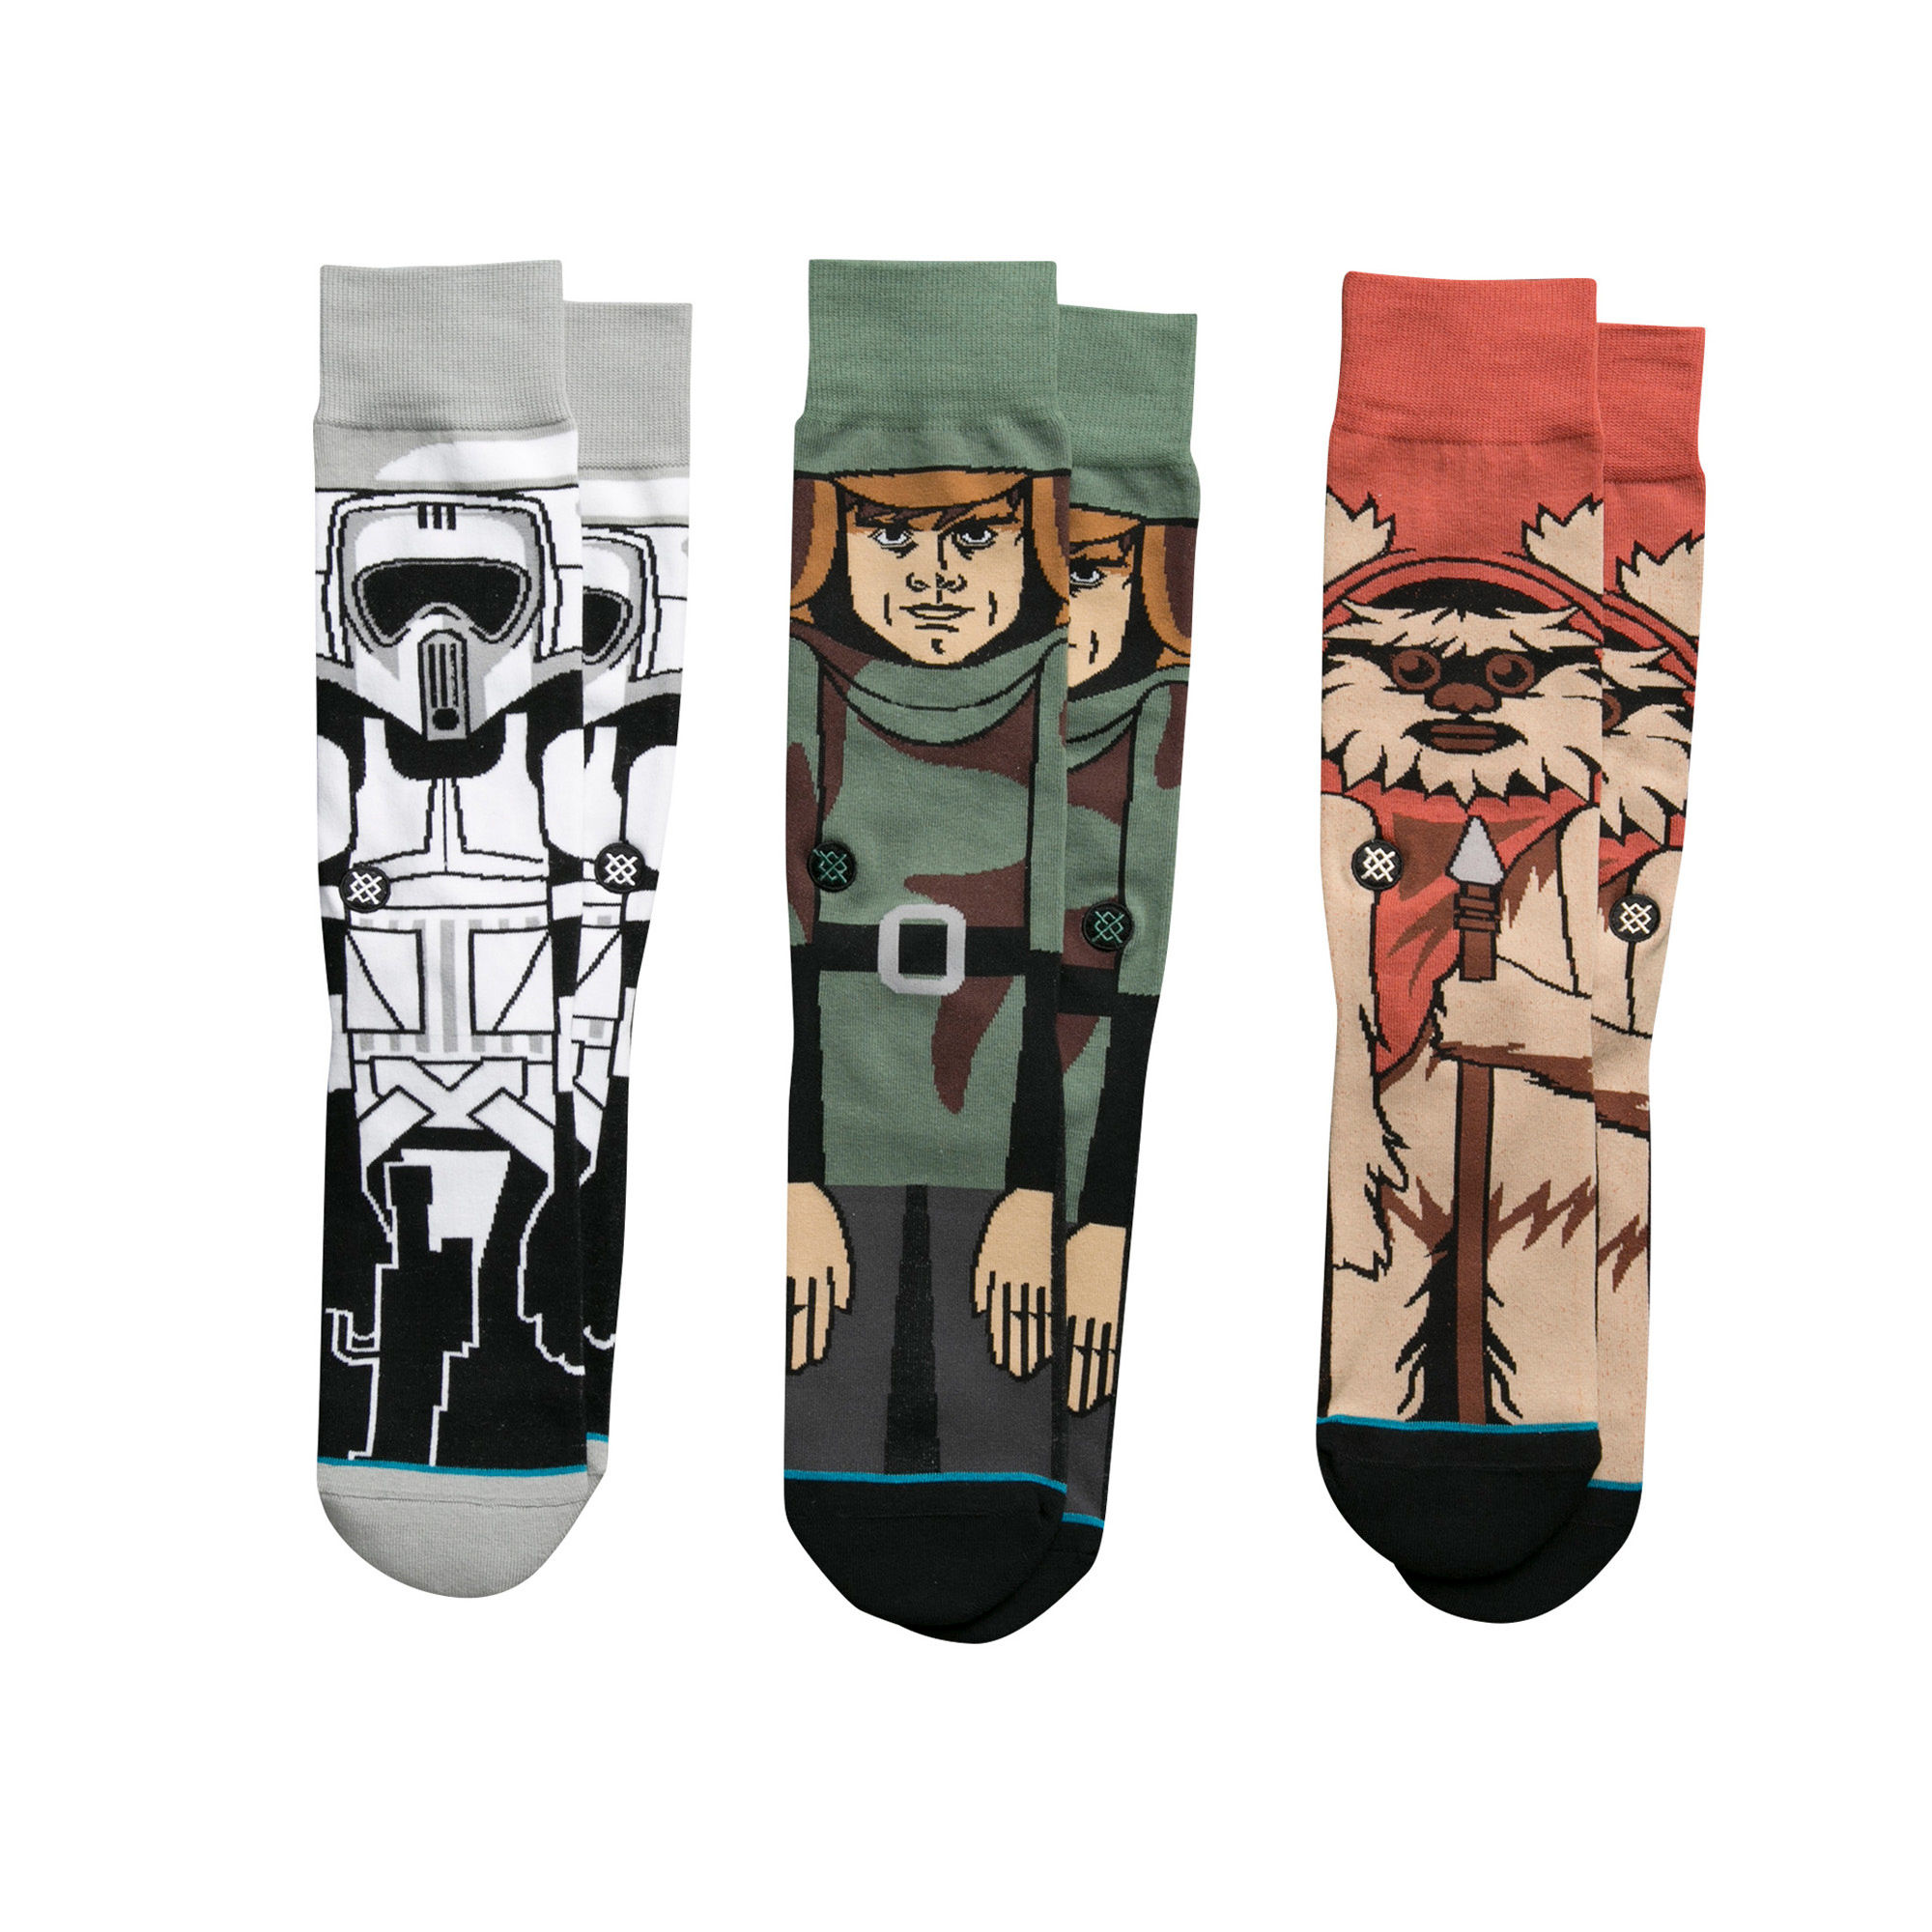 Stance x Star Wars Socks 3 Pack Gift Box Return Of The Jedi SIZE L Movie Sox Set